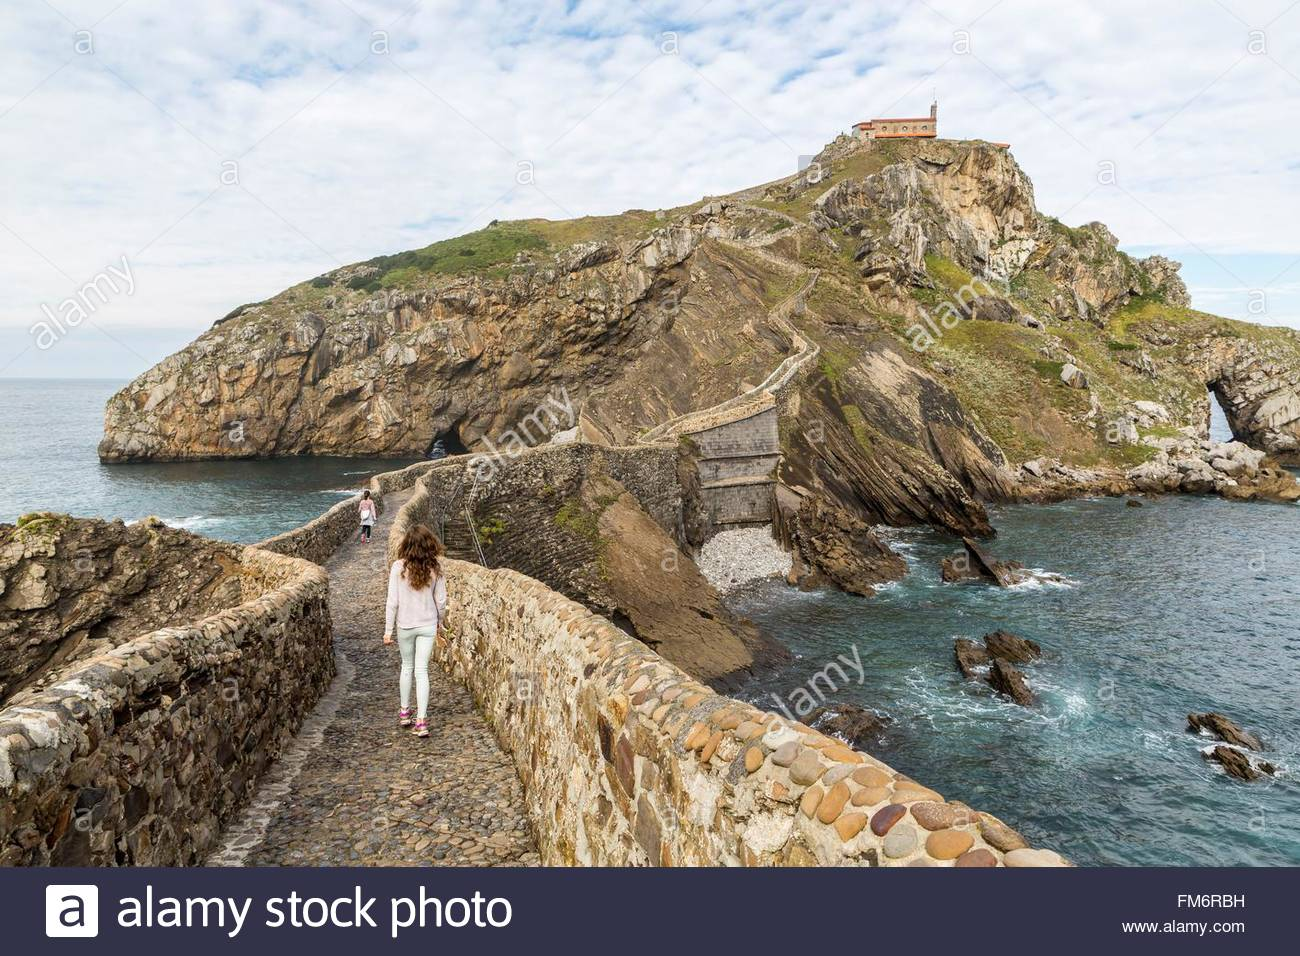 atlantic coast map with Stock Photo Spain Basque Country Bermeo San Juan De Gaztelugatxe Peninsula 98495029 on Gambia also Somerset Levels further 22 Puebloan Mystery Mesa Verde Chaco Canyon And Canyon De Chelly as well Argentina in addition A Doggy Day In Lege Cap Ferret.